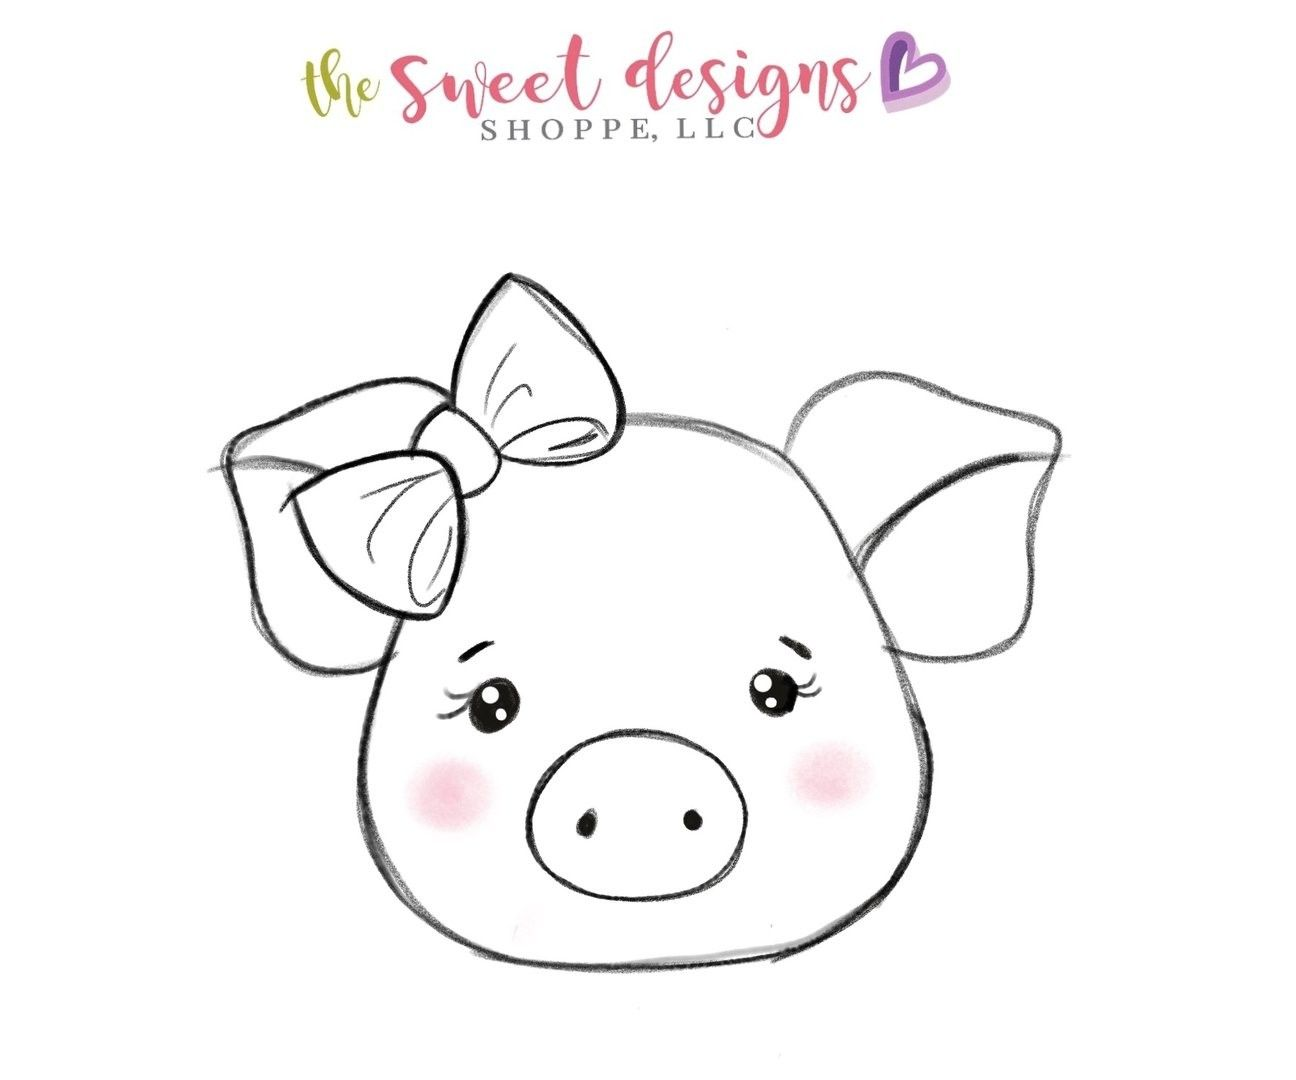 Pin By Elma Mercedes On 1 Cricut Images Felt Animal Patterns Stuffed Animal Patterns Pig Face